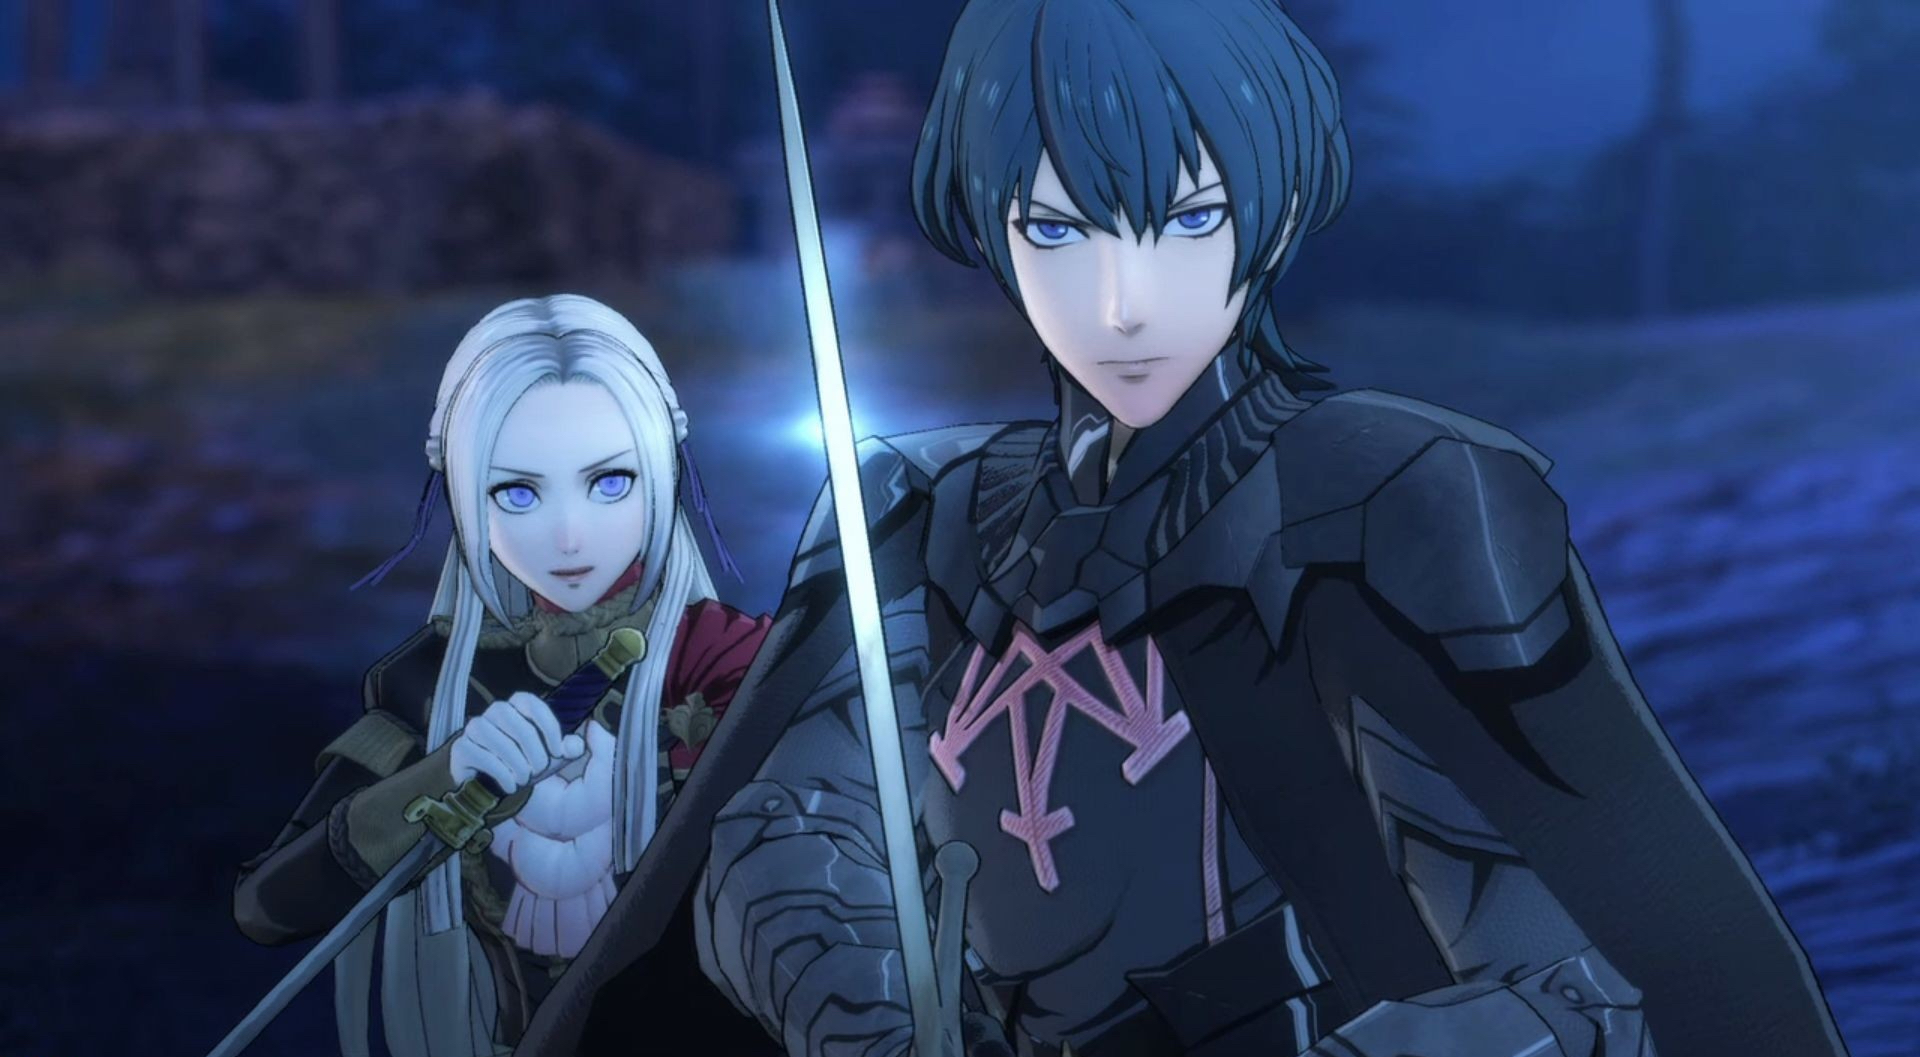 Fire Emblem Three Houses 5 Game Suggestions To Play After Completion